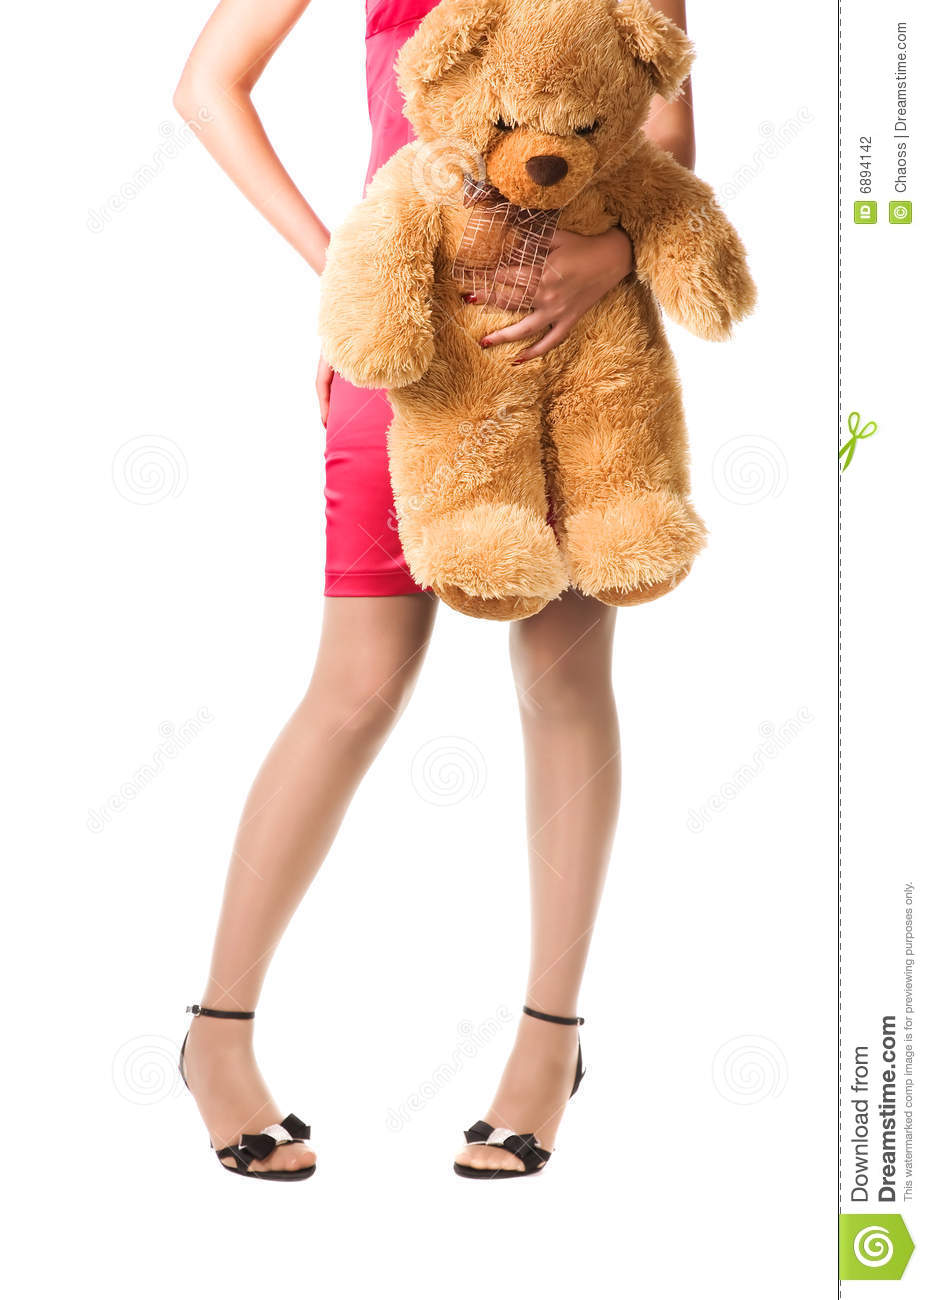 Gril Toy For Teenager : Teenager girl holding toy bear stock photography image